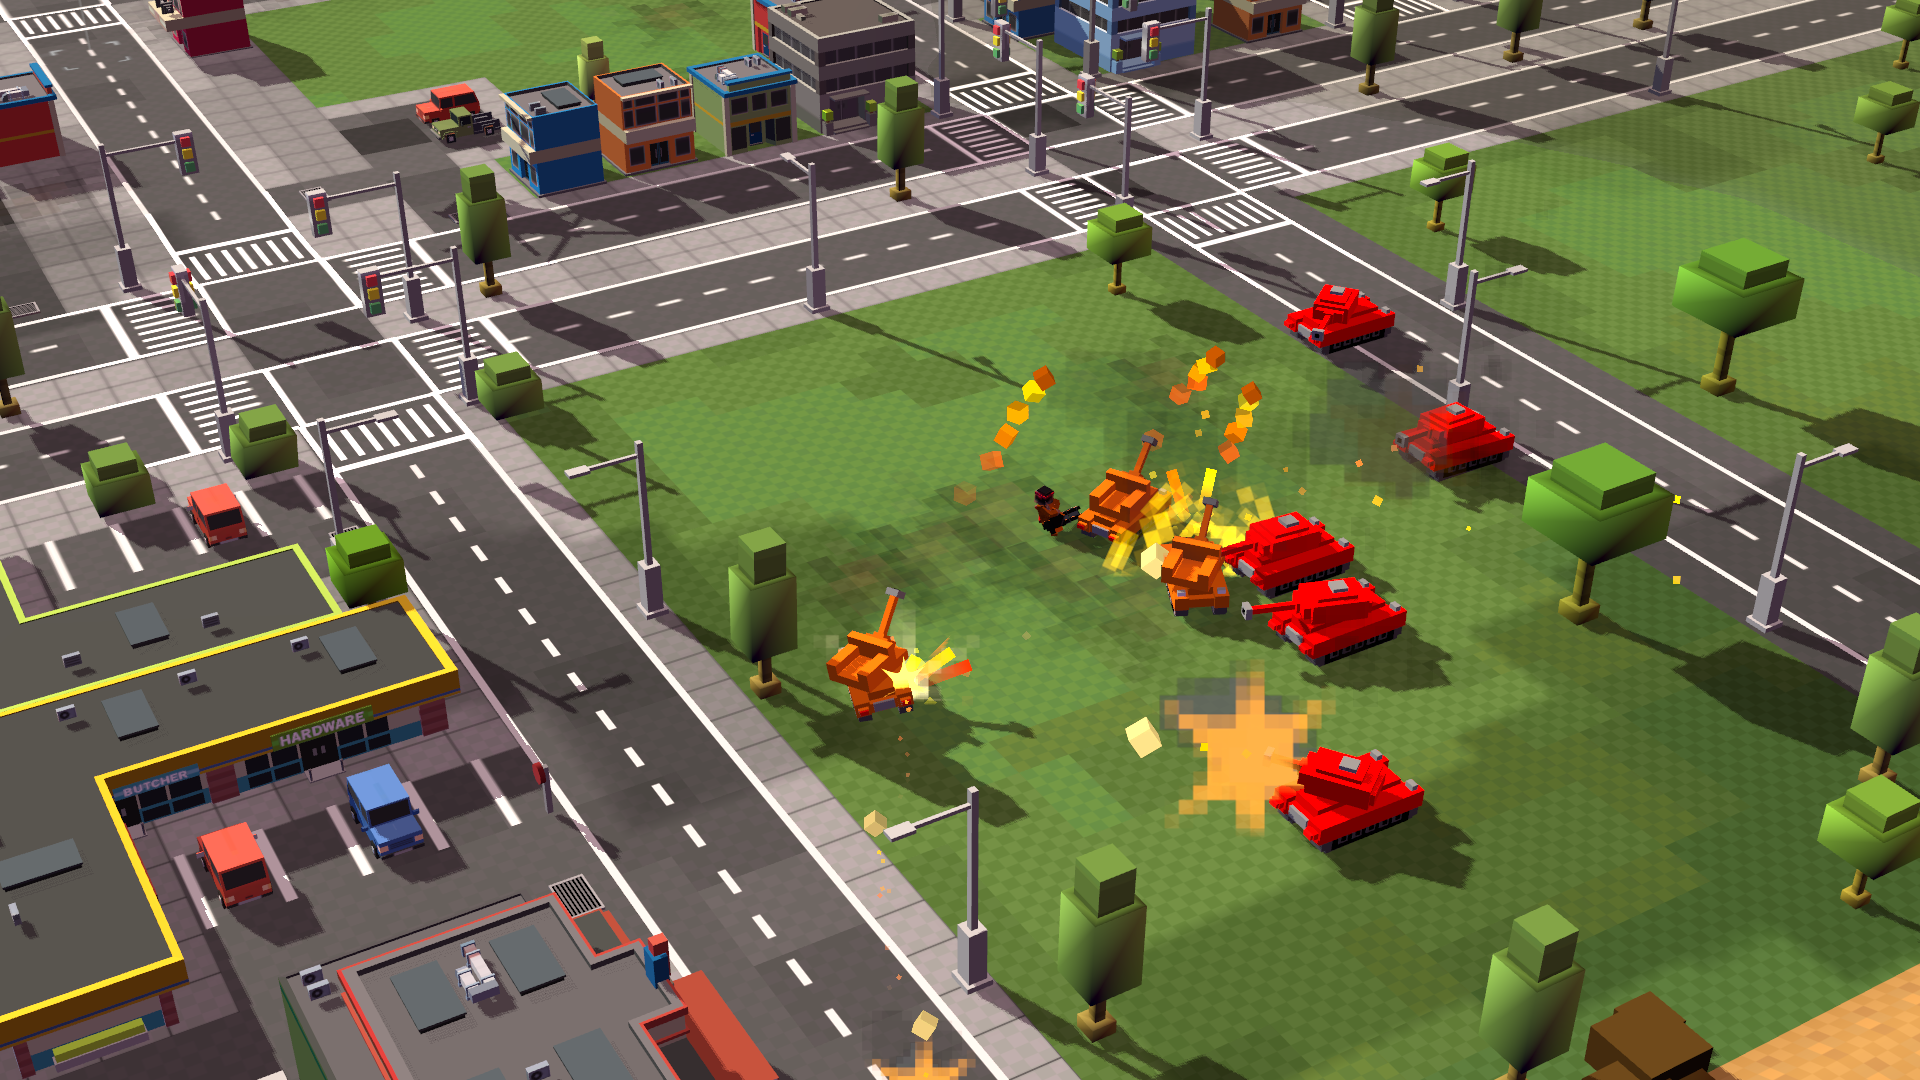 8-Bit Armies Just Announced for Xbox One and Playstation 4